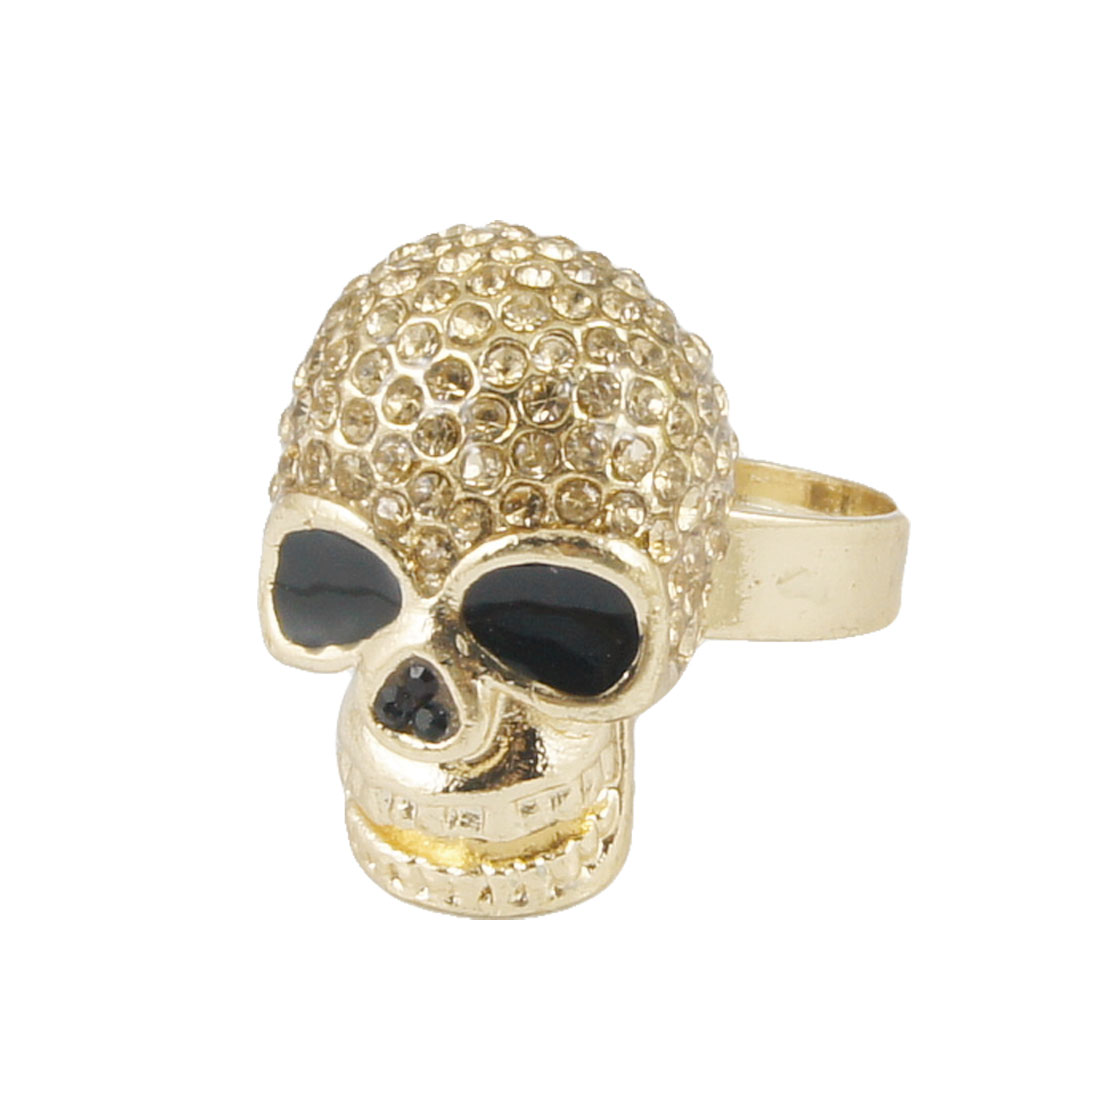 "Rhinestone Accent Skull Design 0.95"" Width Finger Ring for Woman"